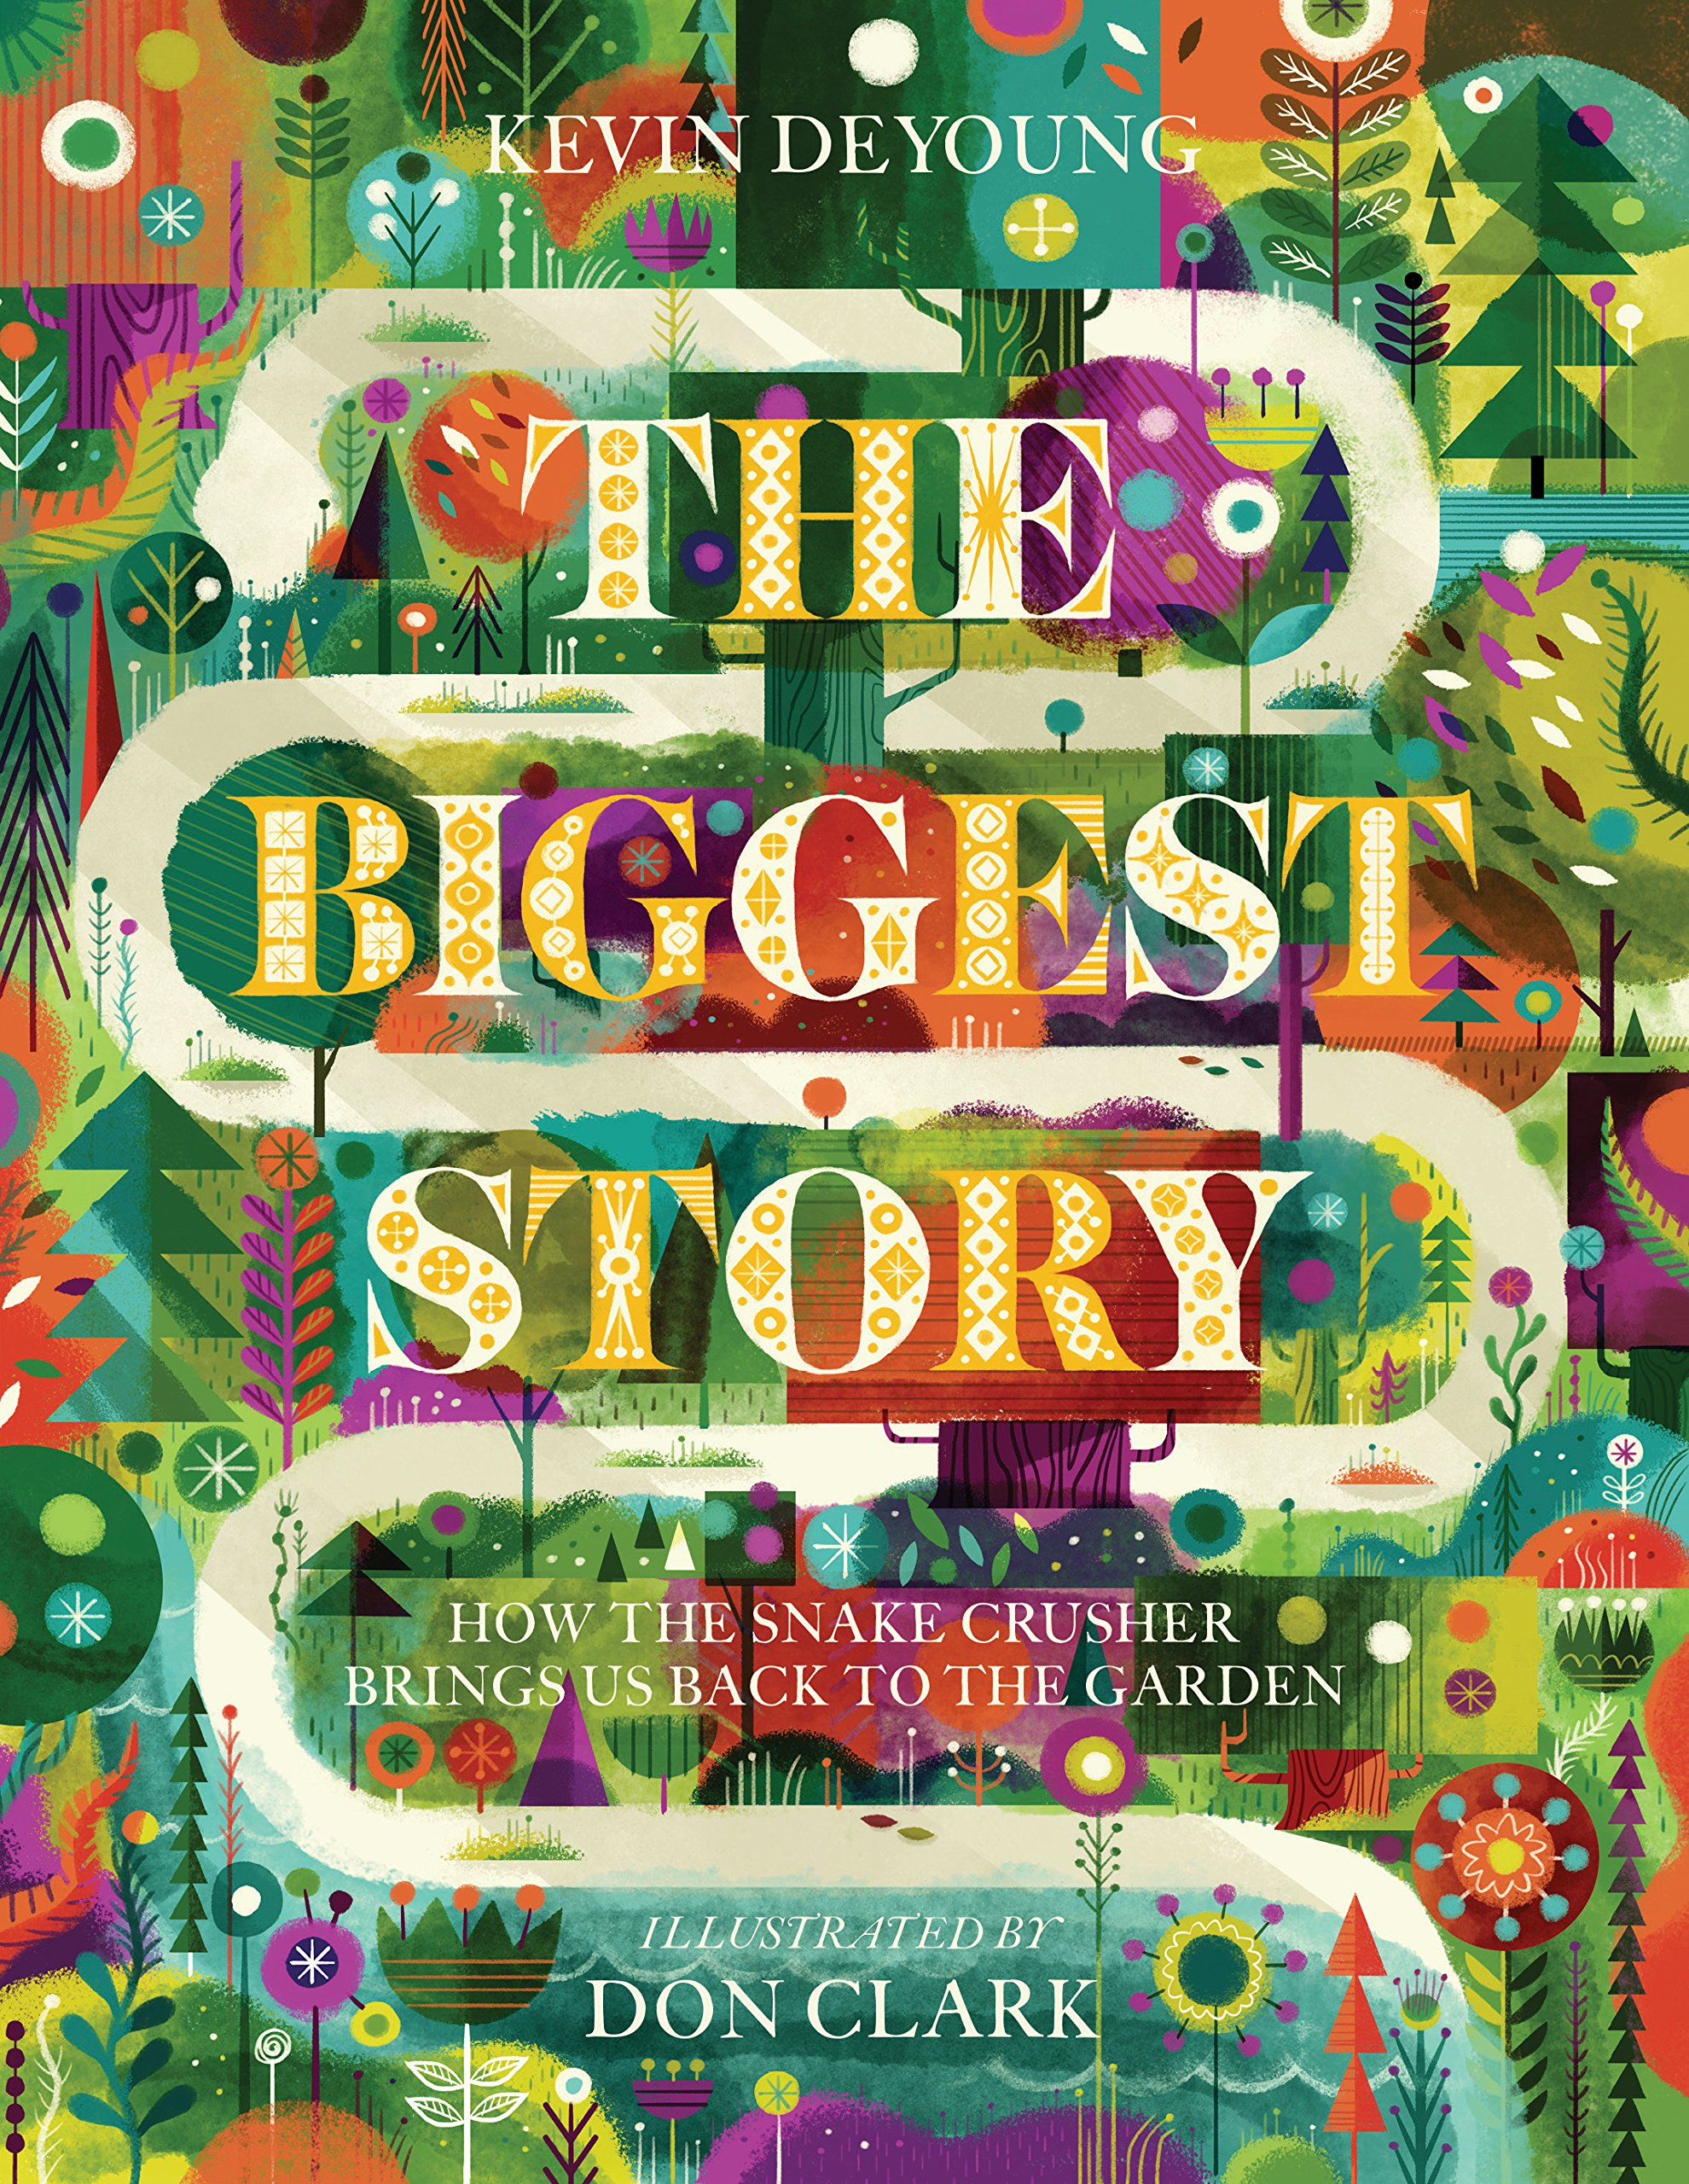 The Biggest Story, by Kevin DeYoung